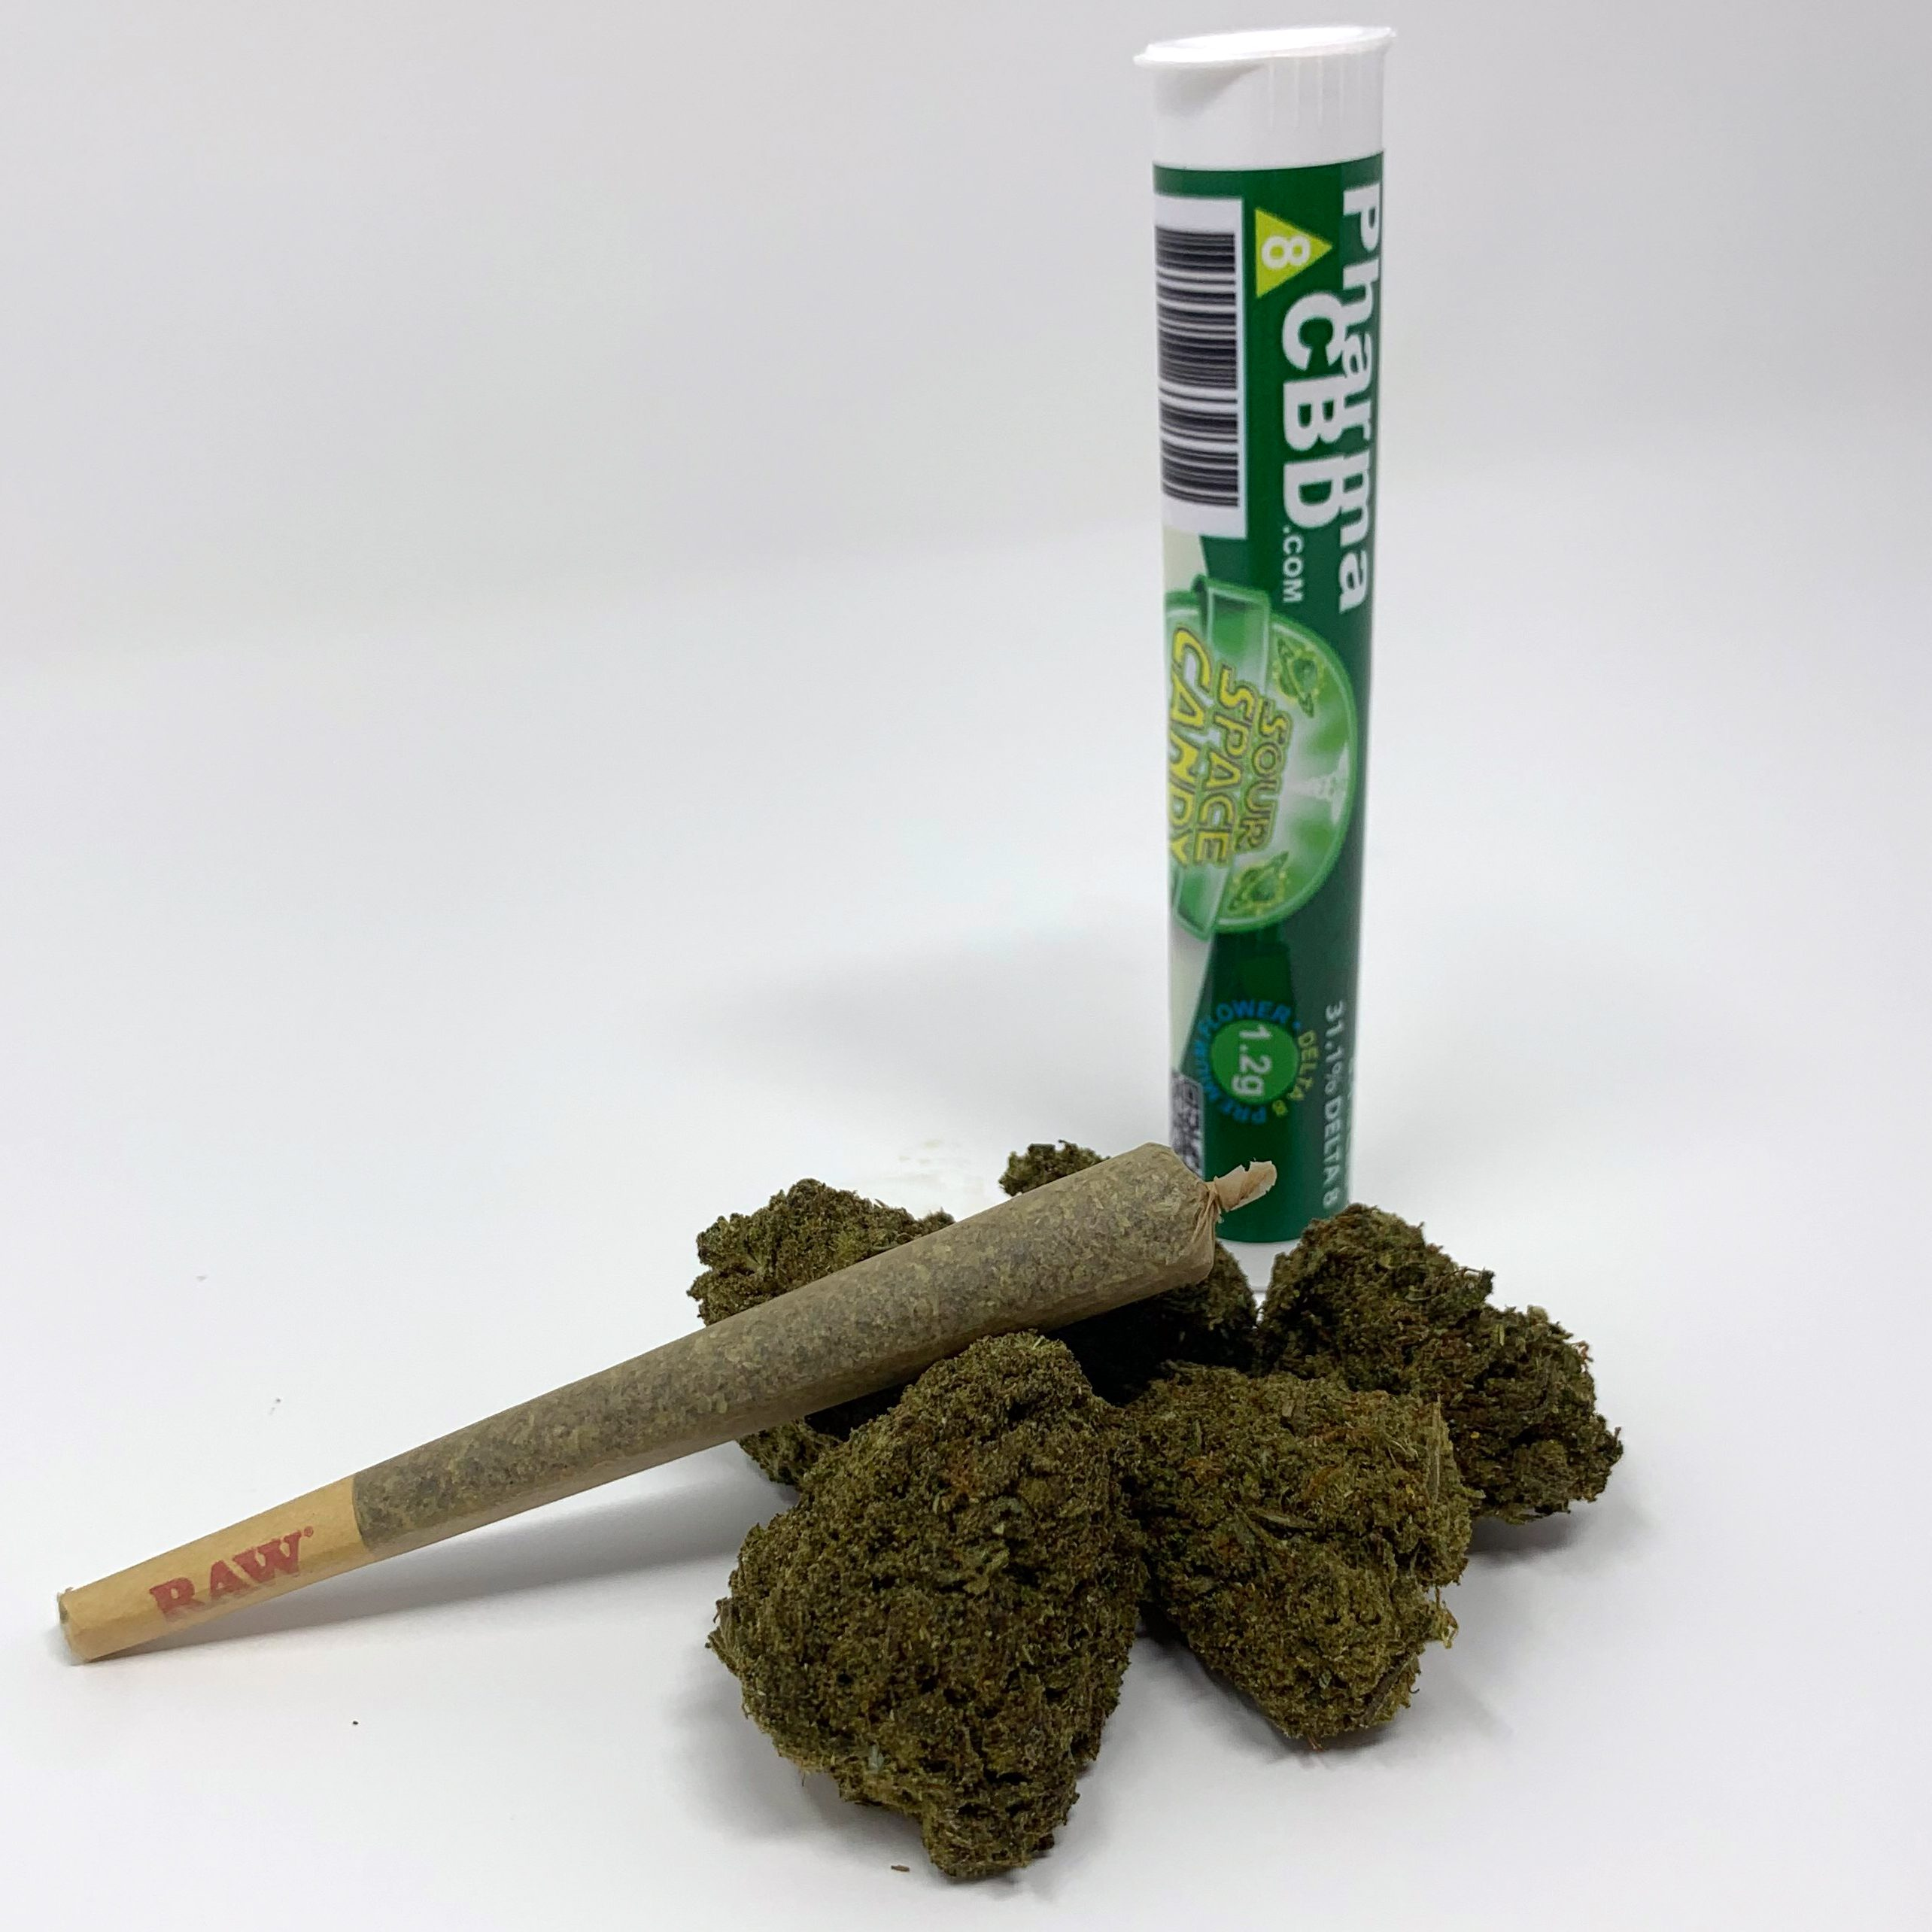 PharmaCBD Delta-8-THC Infused Pre-Roll - Sour Space Candy